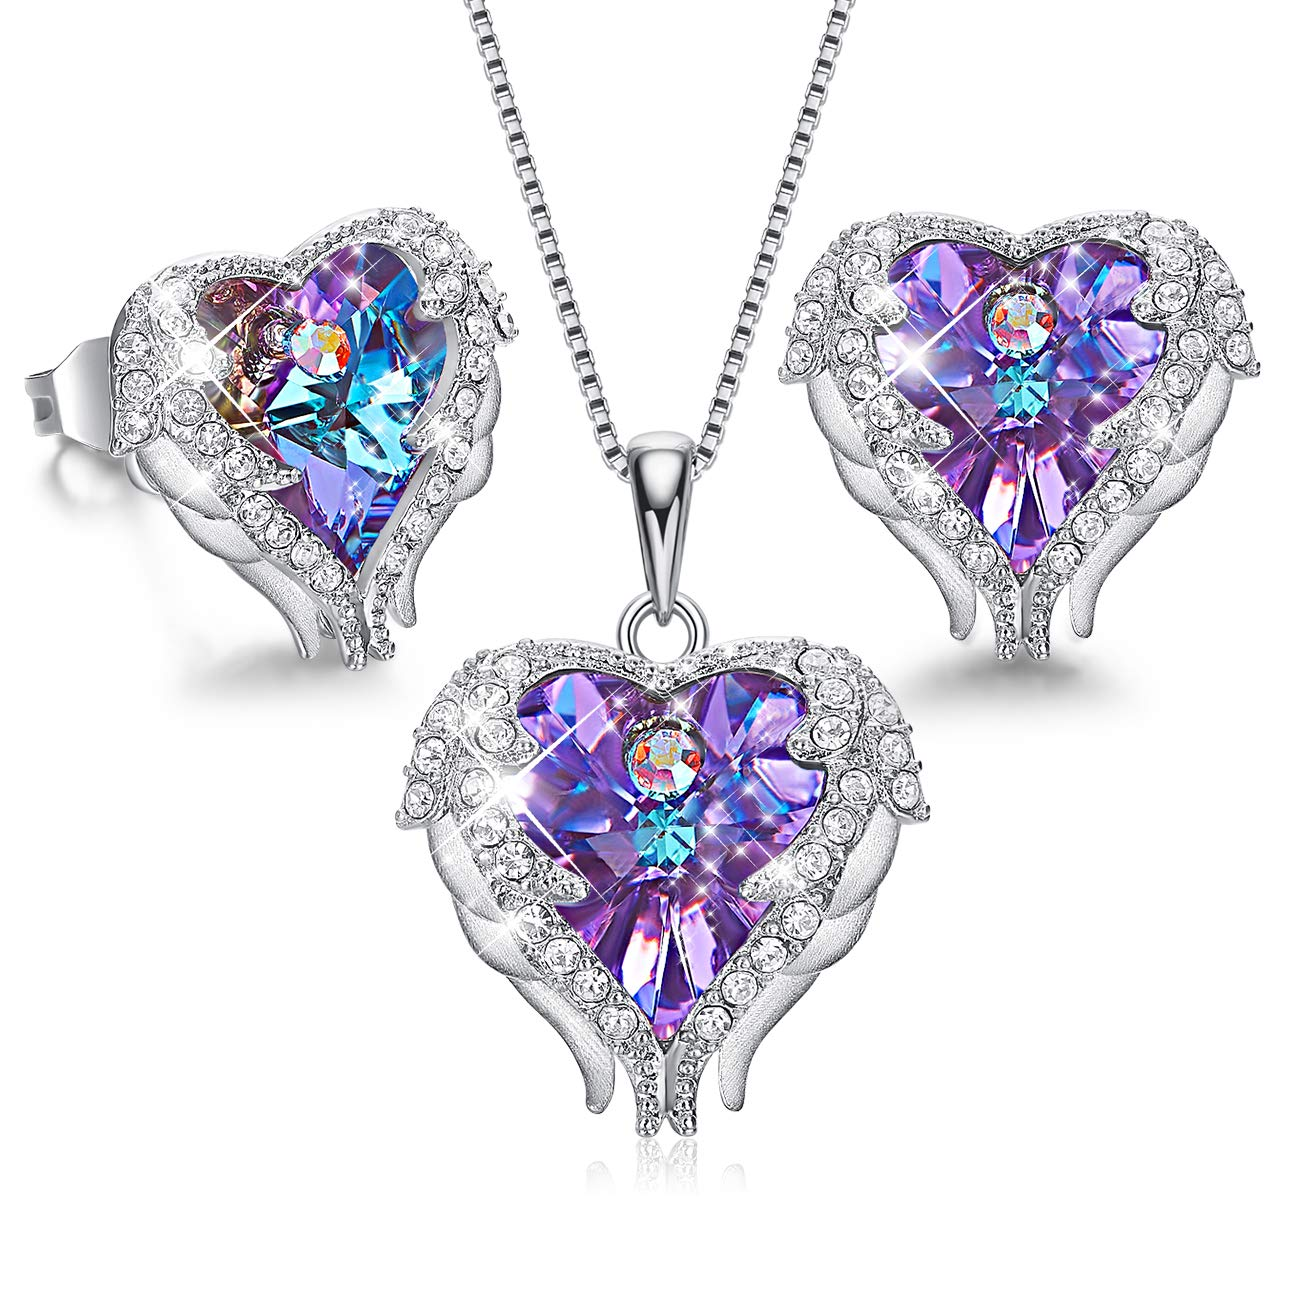 CDE Angel Wing Heart Necklaces and Earrings for Mothers Day Embellished with Crystals from Swarovski 18K White Gold Plated Jewelry Set Women (6_Purple (Sterling Silver))